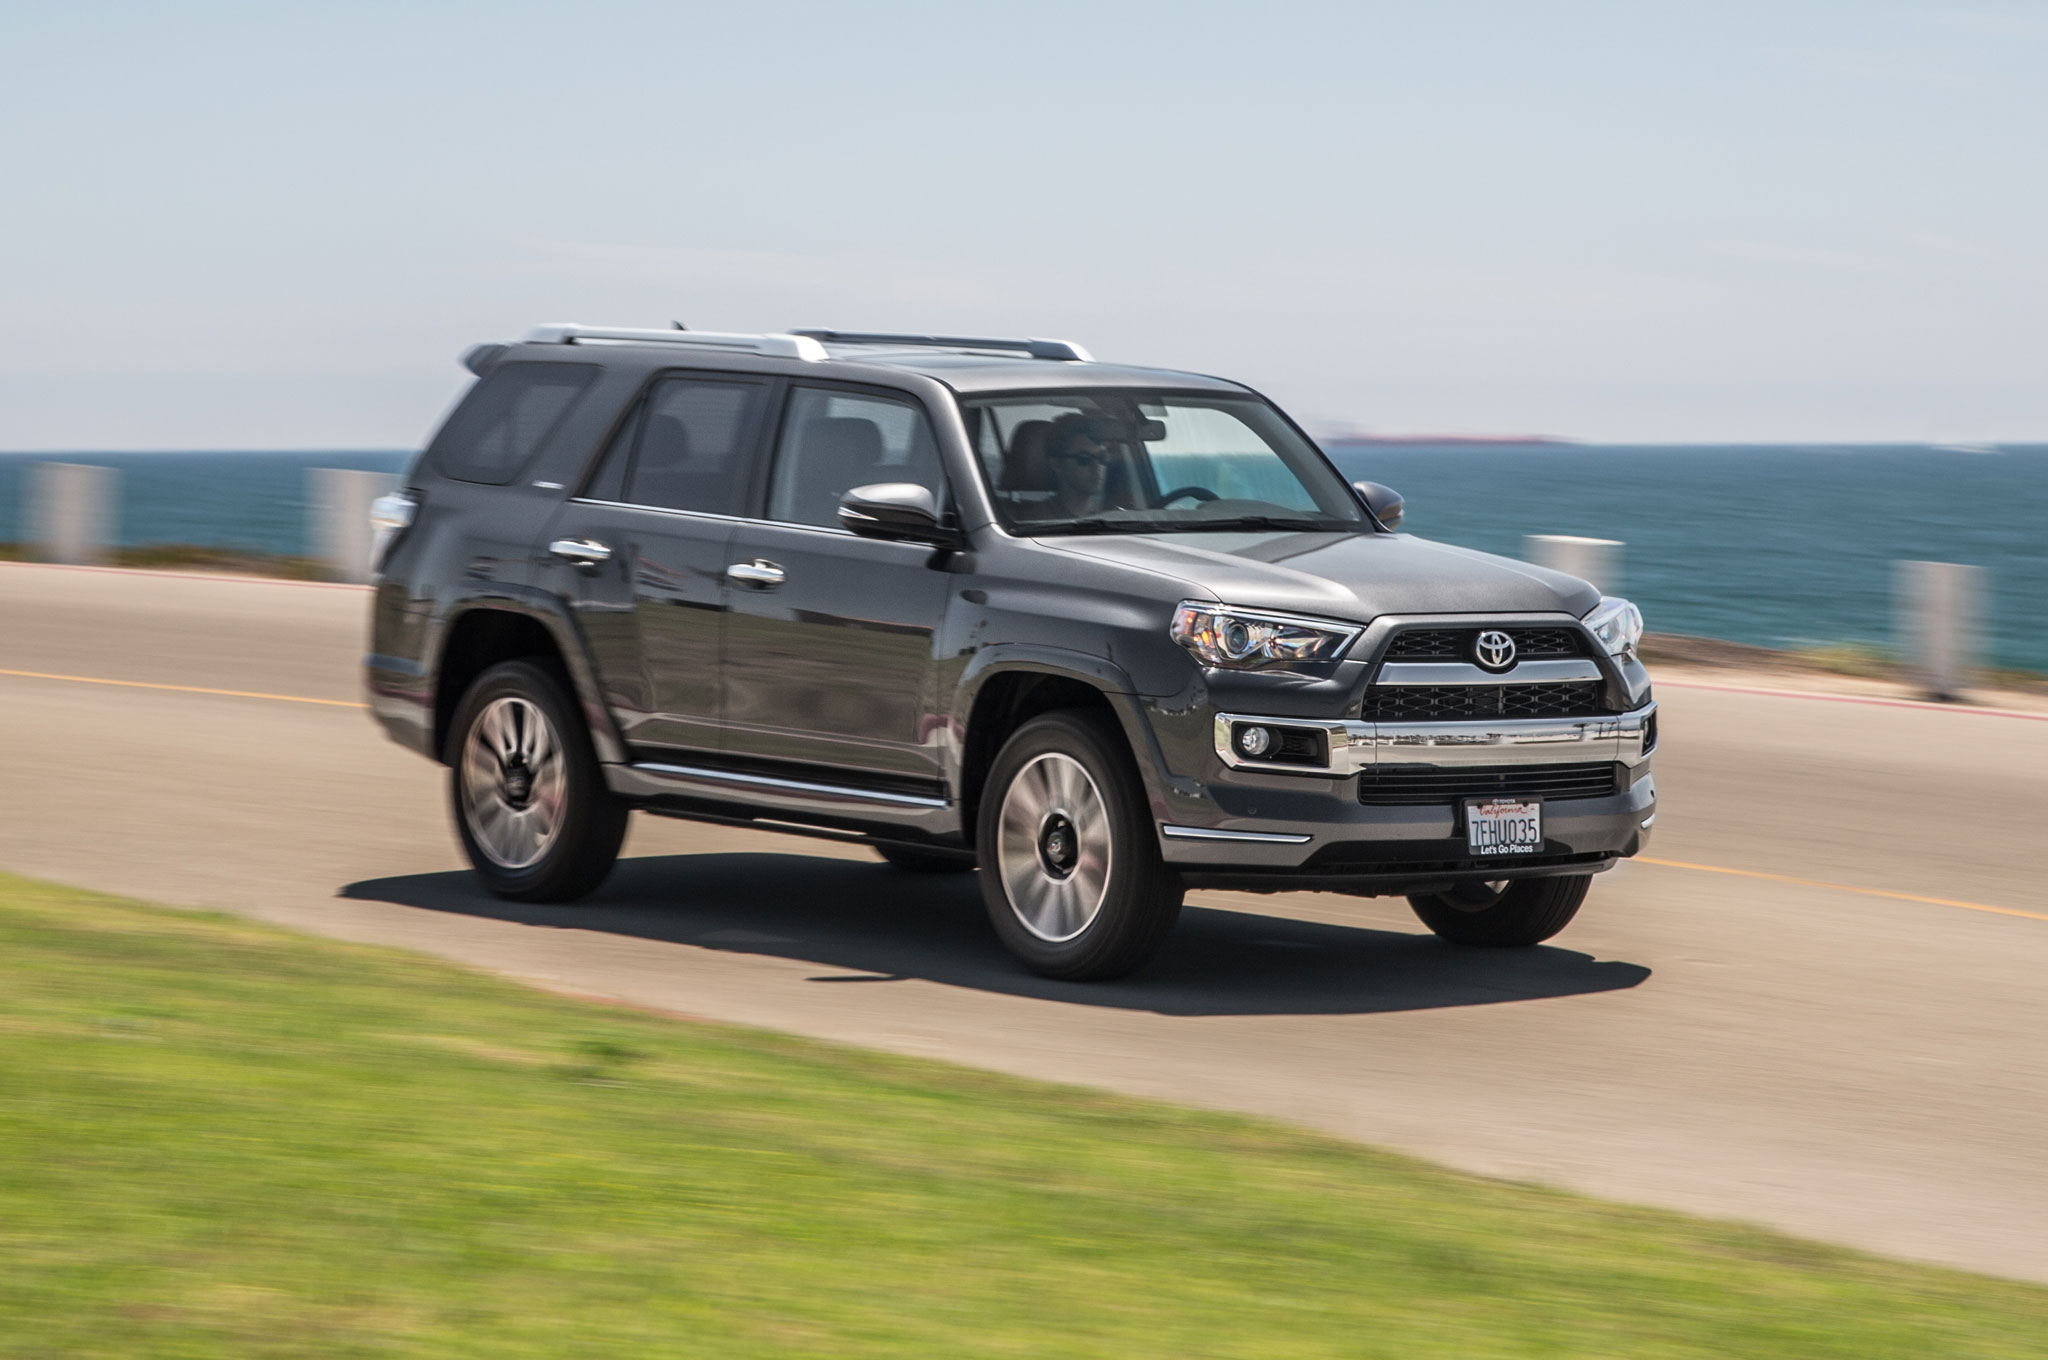 Article 2015 Toyota 4runner Limited 4x4 First Test Overstockcom 1986 Rear Window Wiring Diagram This Time Around We Got Our Hands On The Top Spec